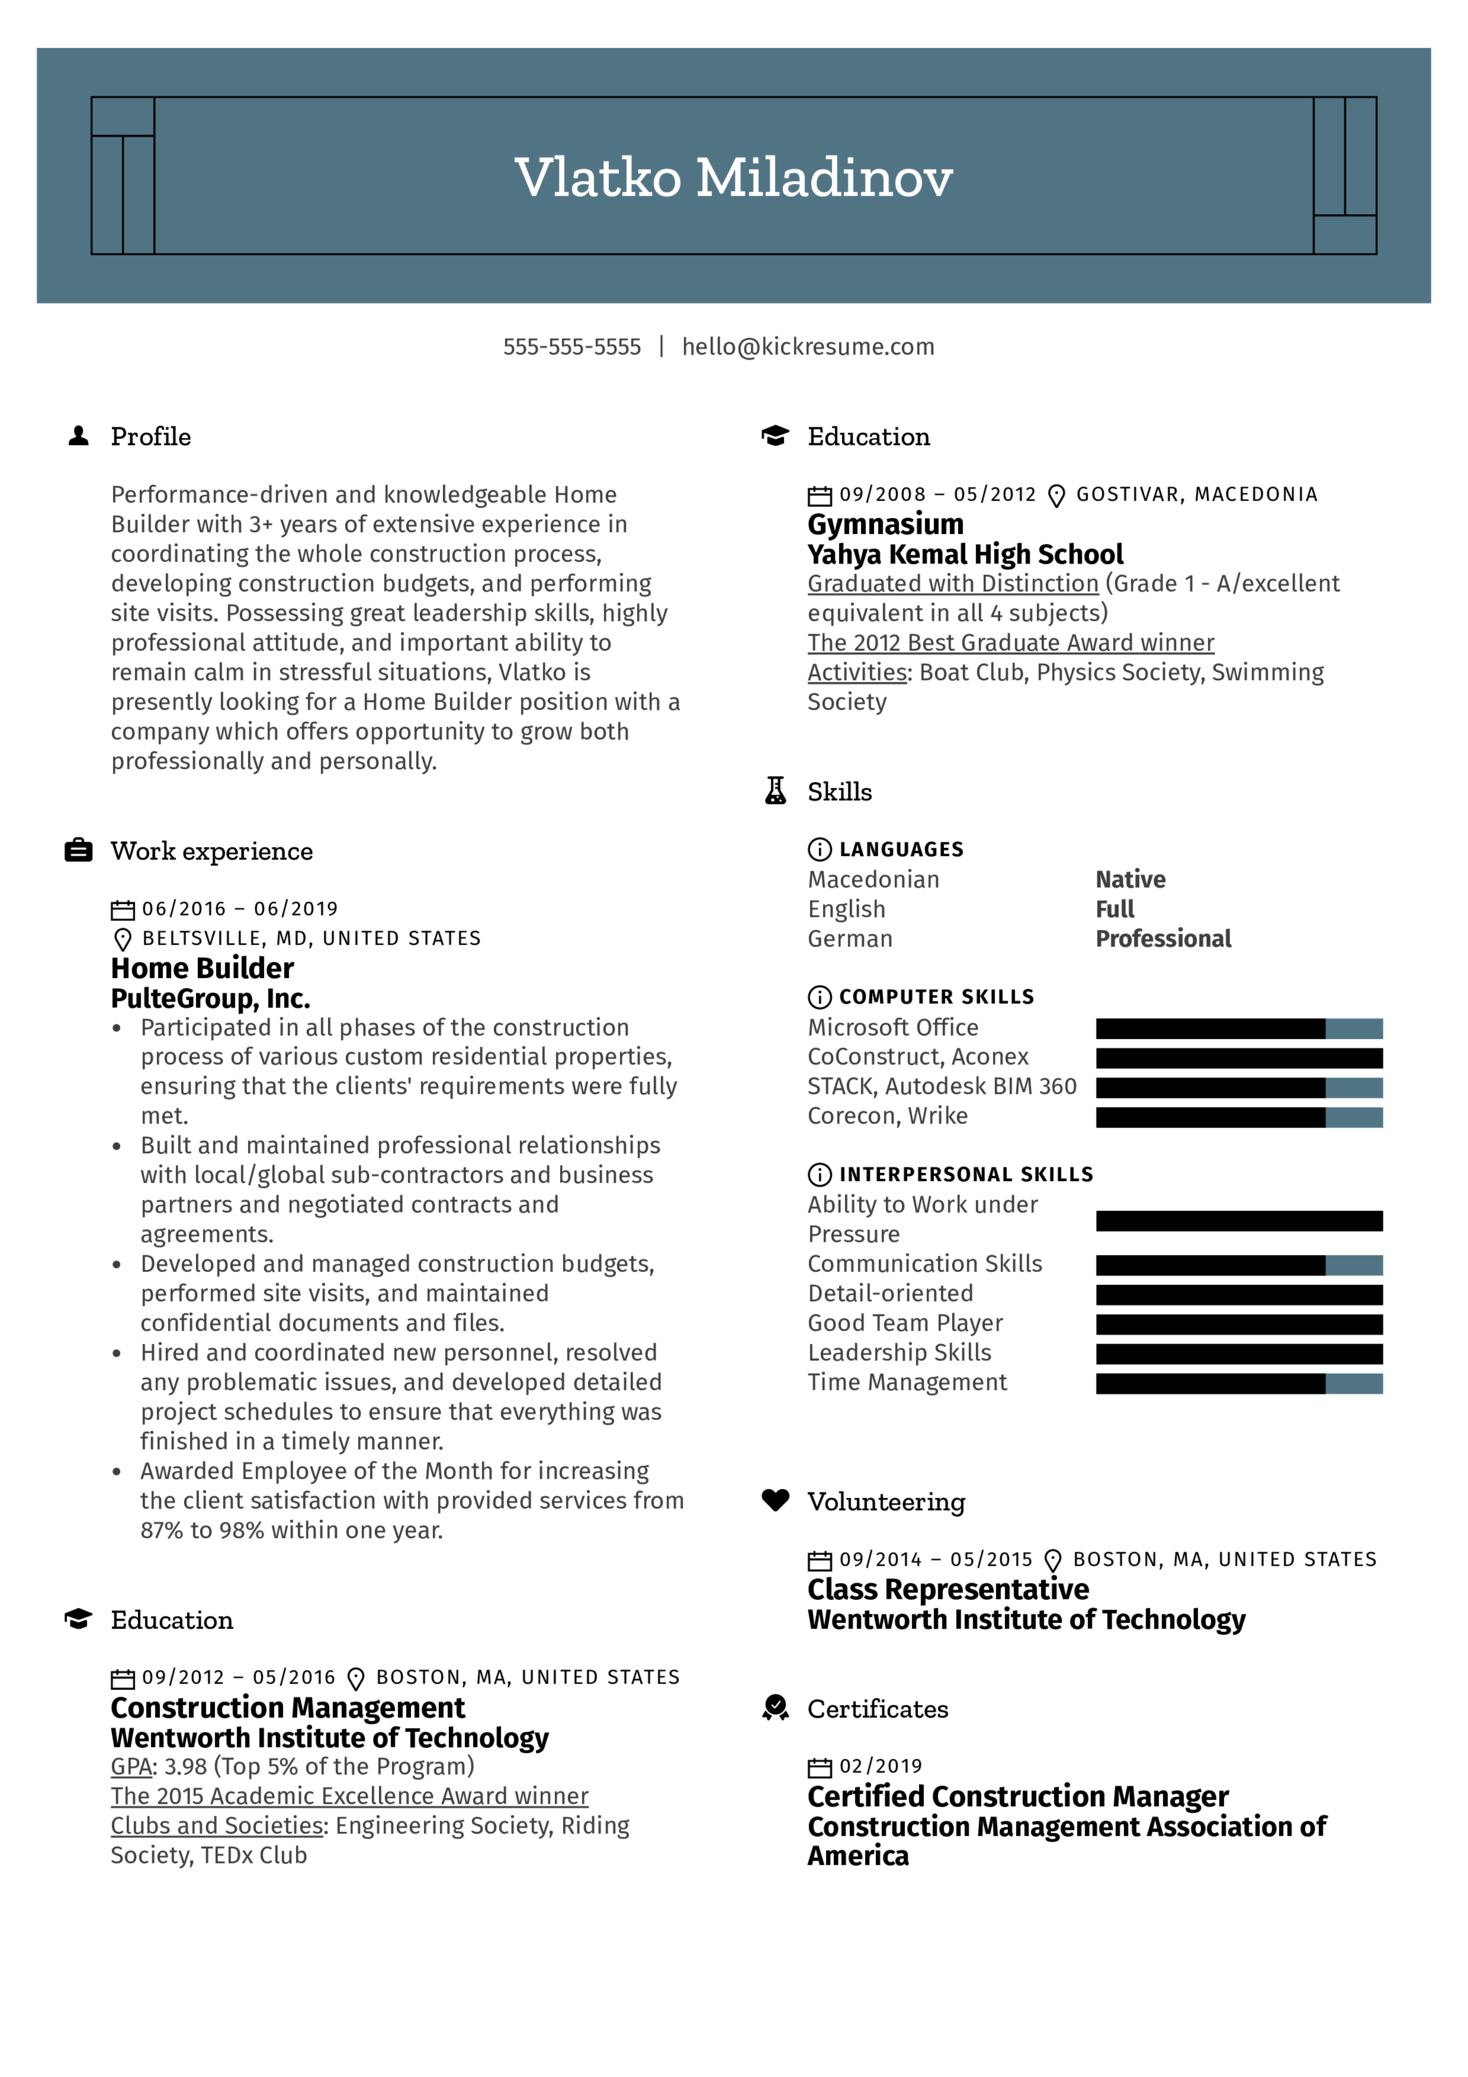 Home Builder Resume Example (Part 1)